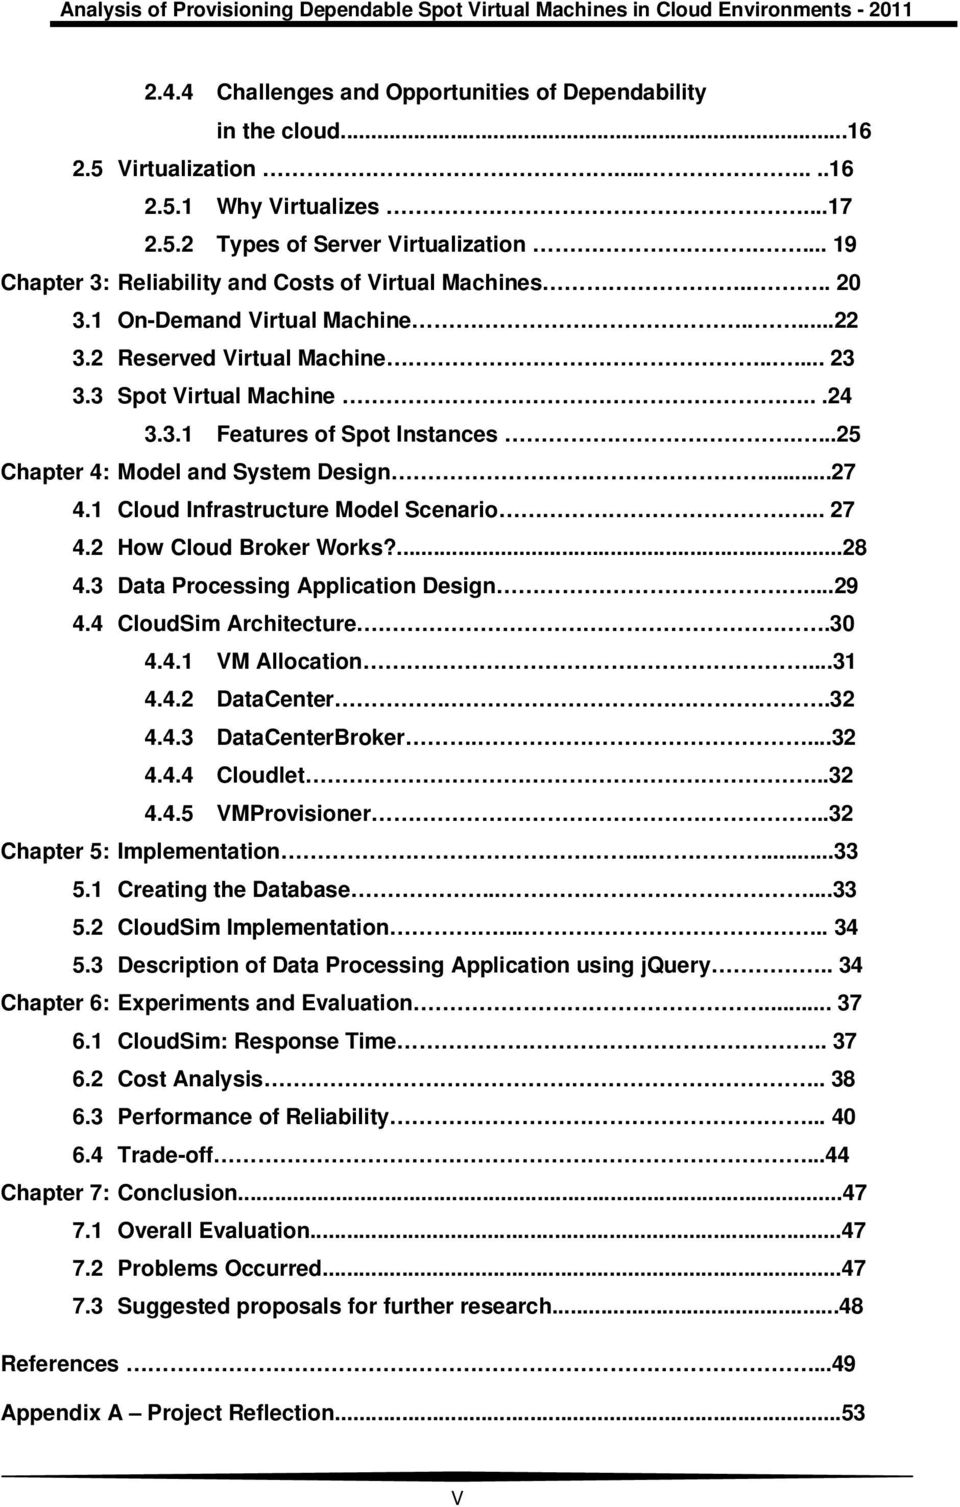 ...25 Chapter 4: Model and System Design...27 4.1 Cloud Infrastructure Model Scenario... 27 4.2 How Cloud Broker Works?...28 4.3 Data Processing Application Design...29 4.4 CloudSim Architecture..30 4.